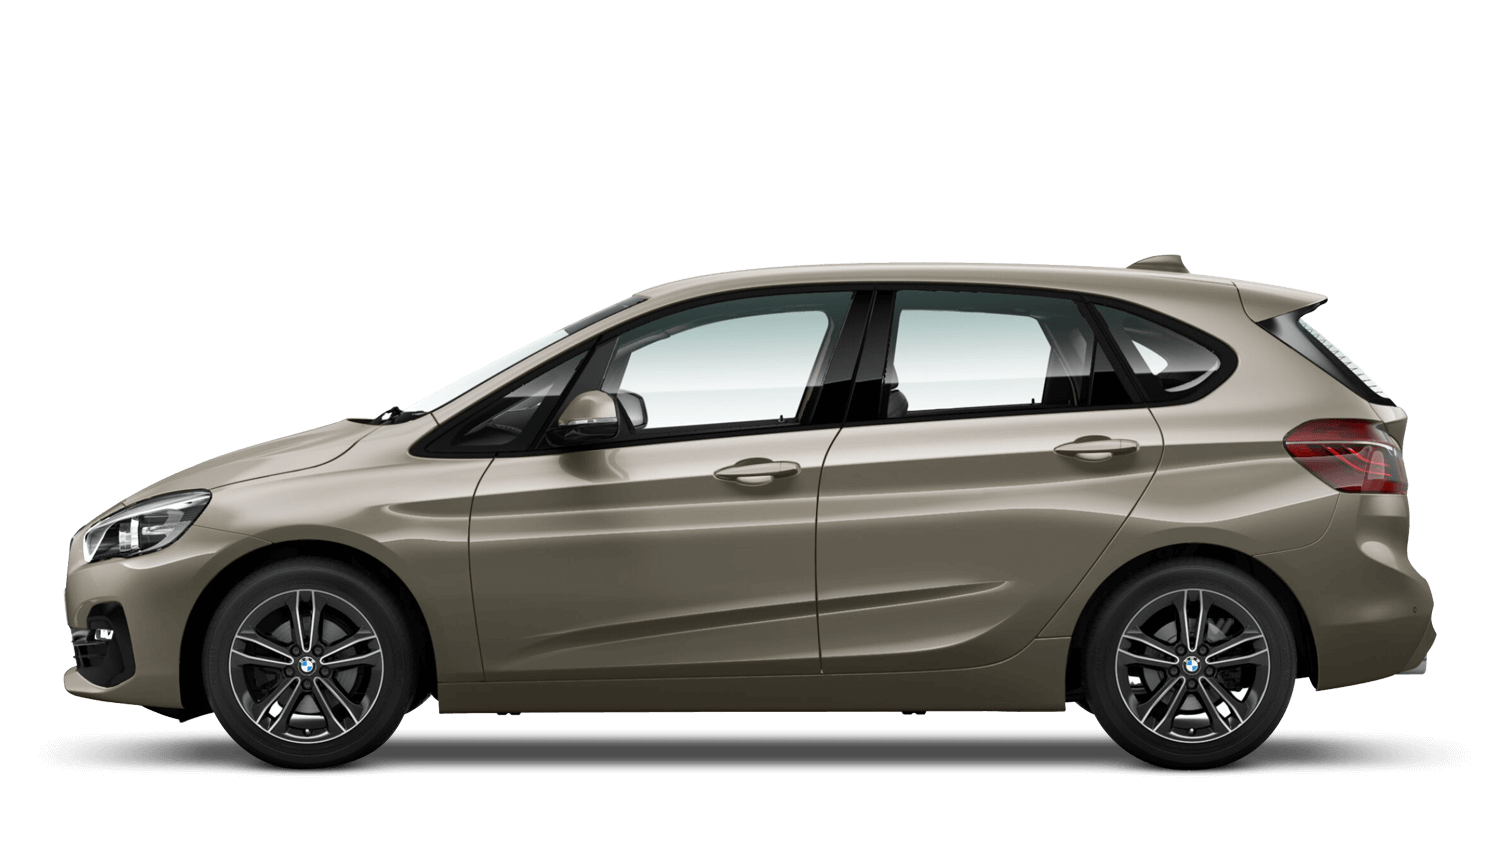 Jucaro Beige (Metallic) BMW 2 Series Active Tourer